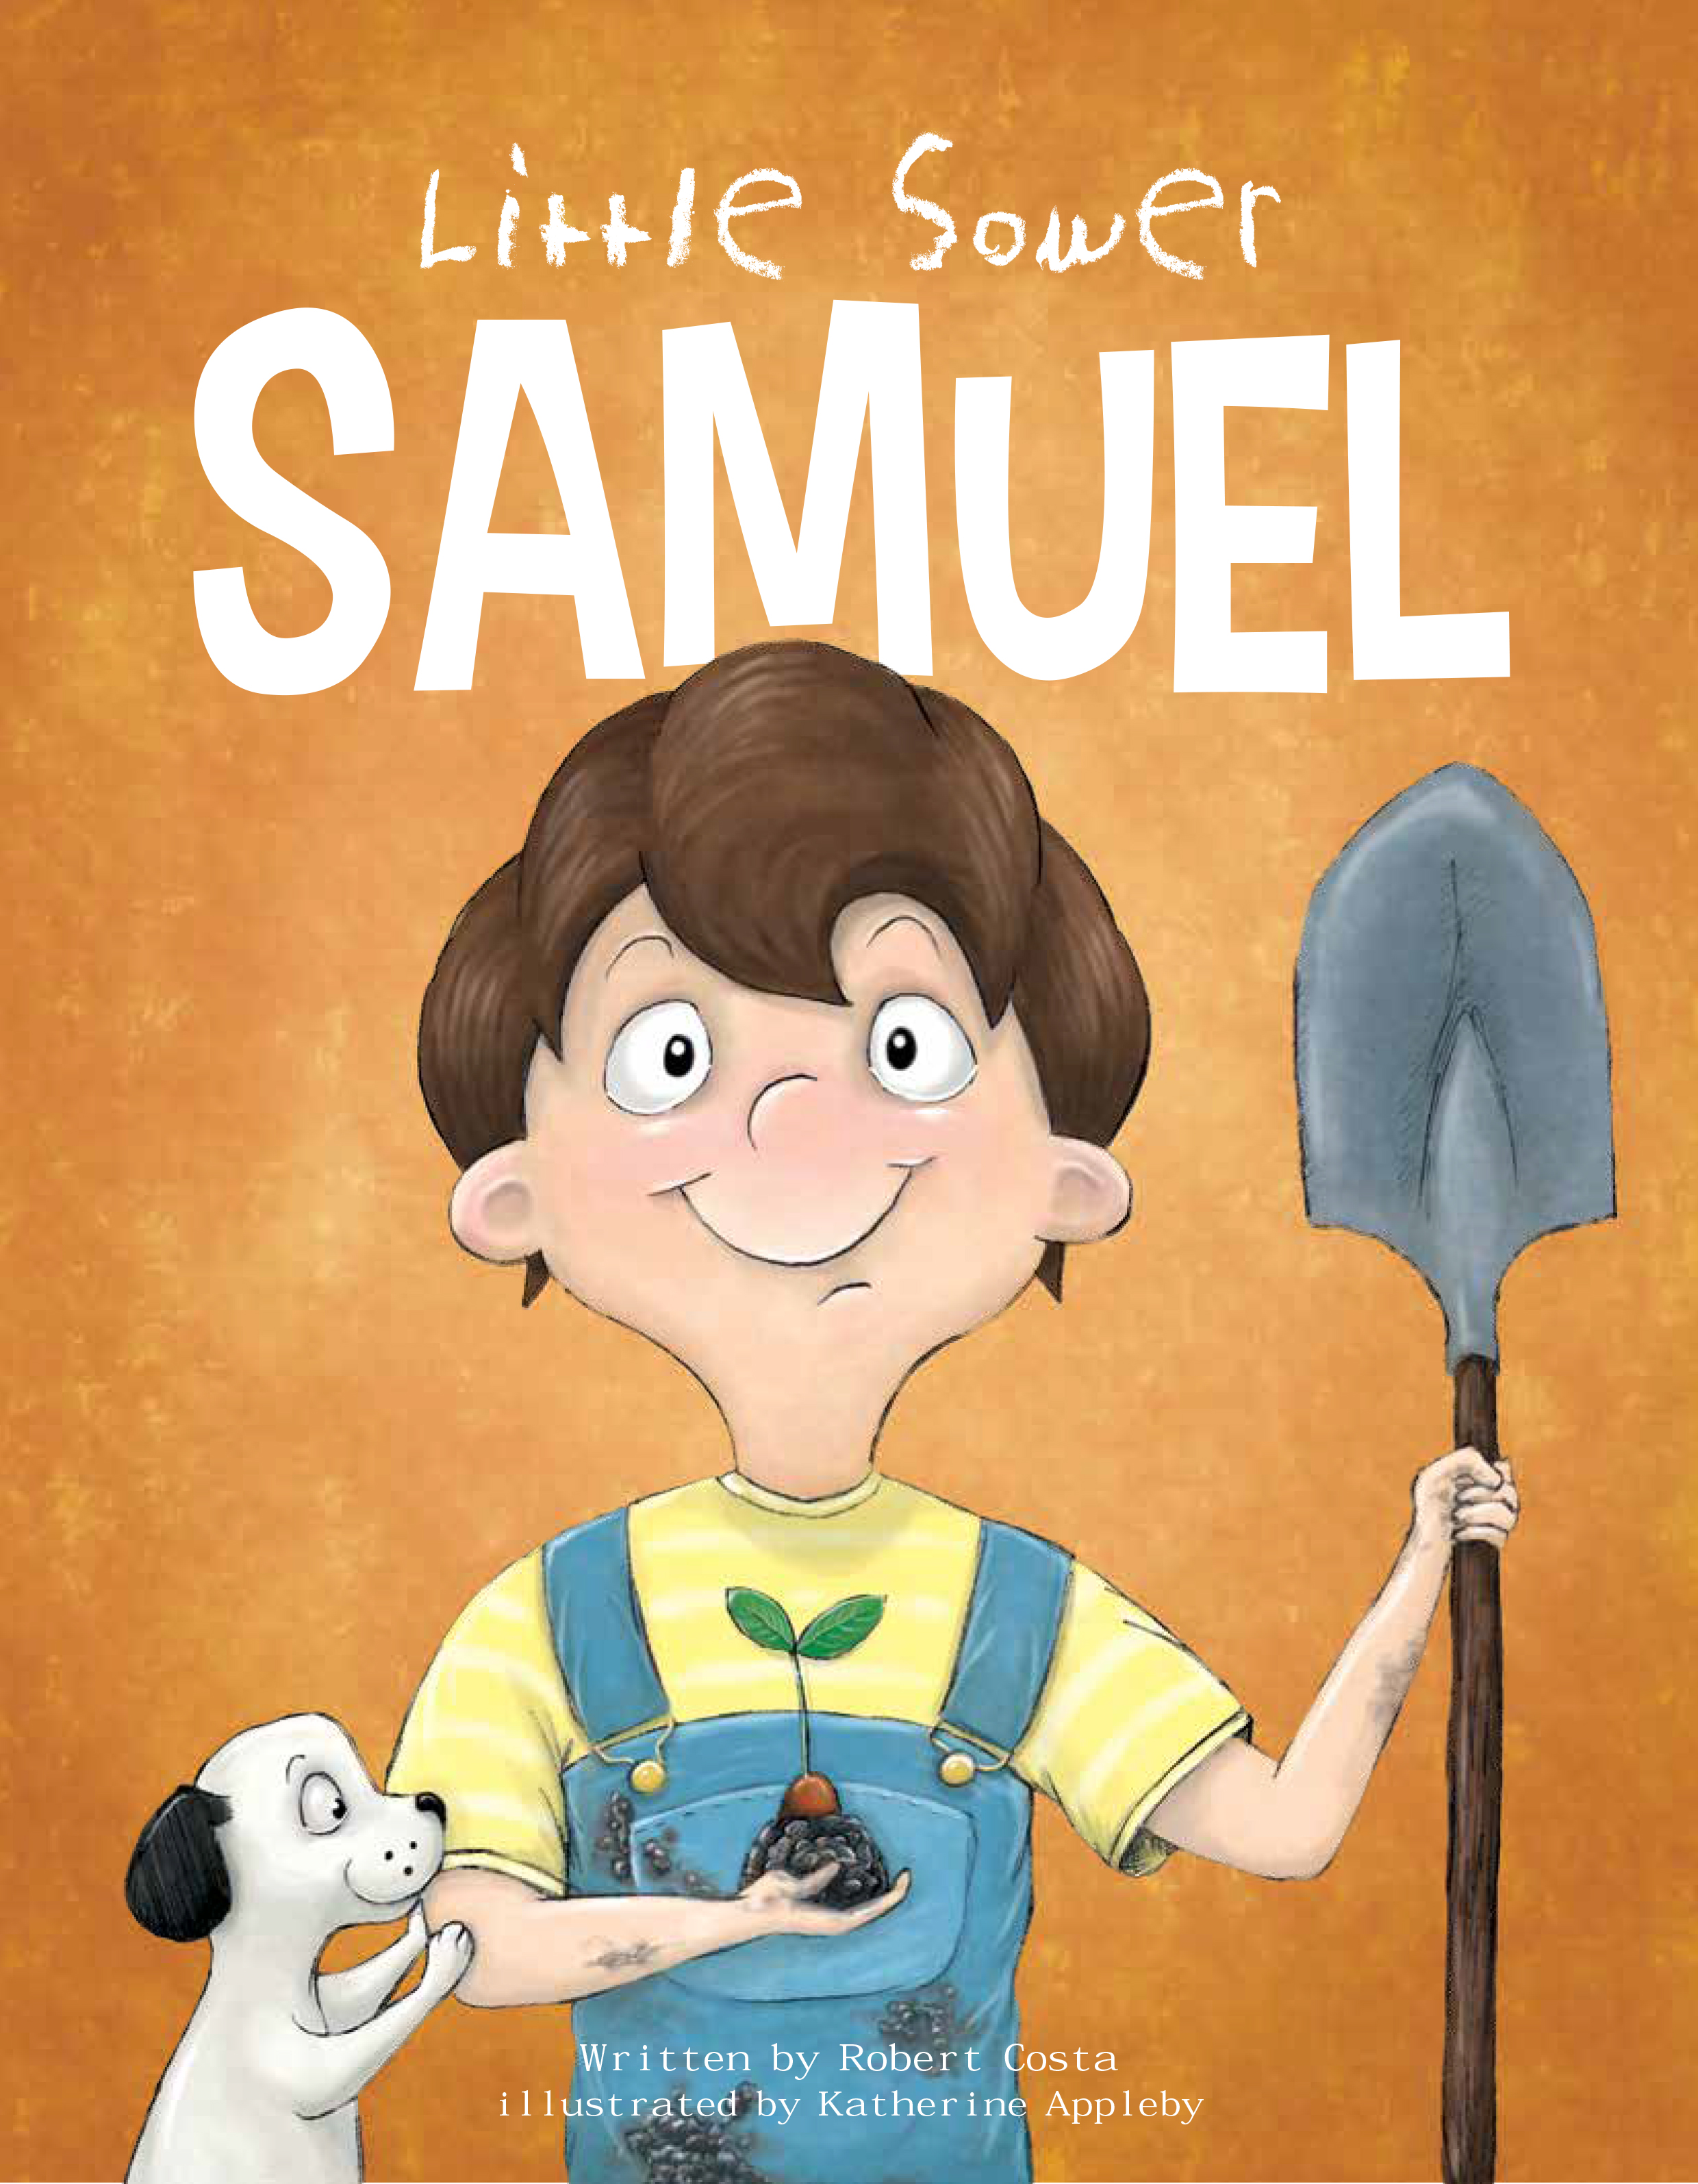 little sower samuel_Cover_V02-1.jpg